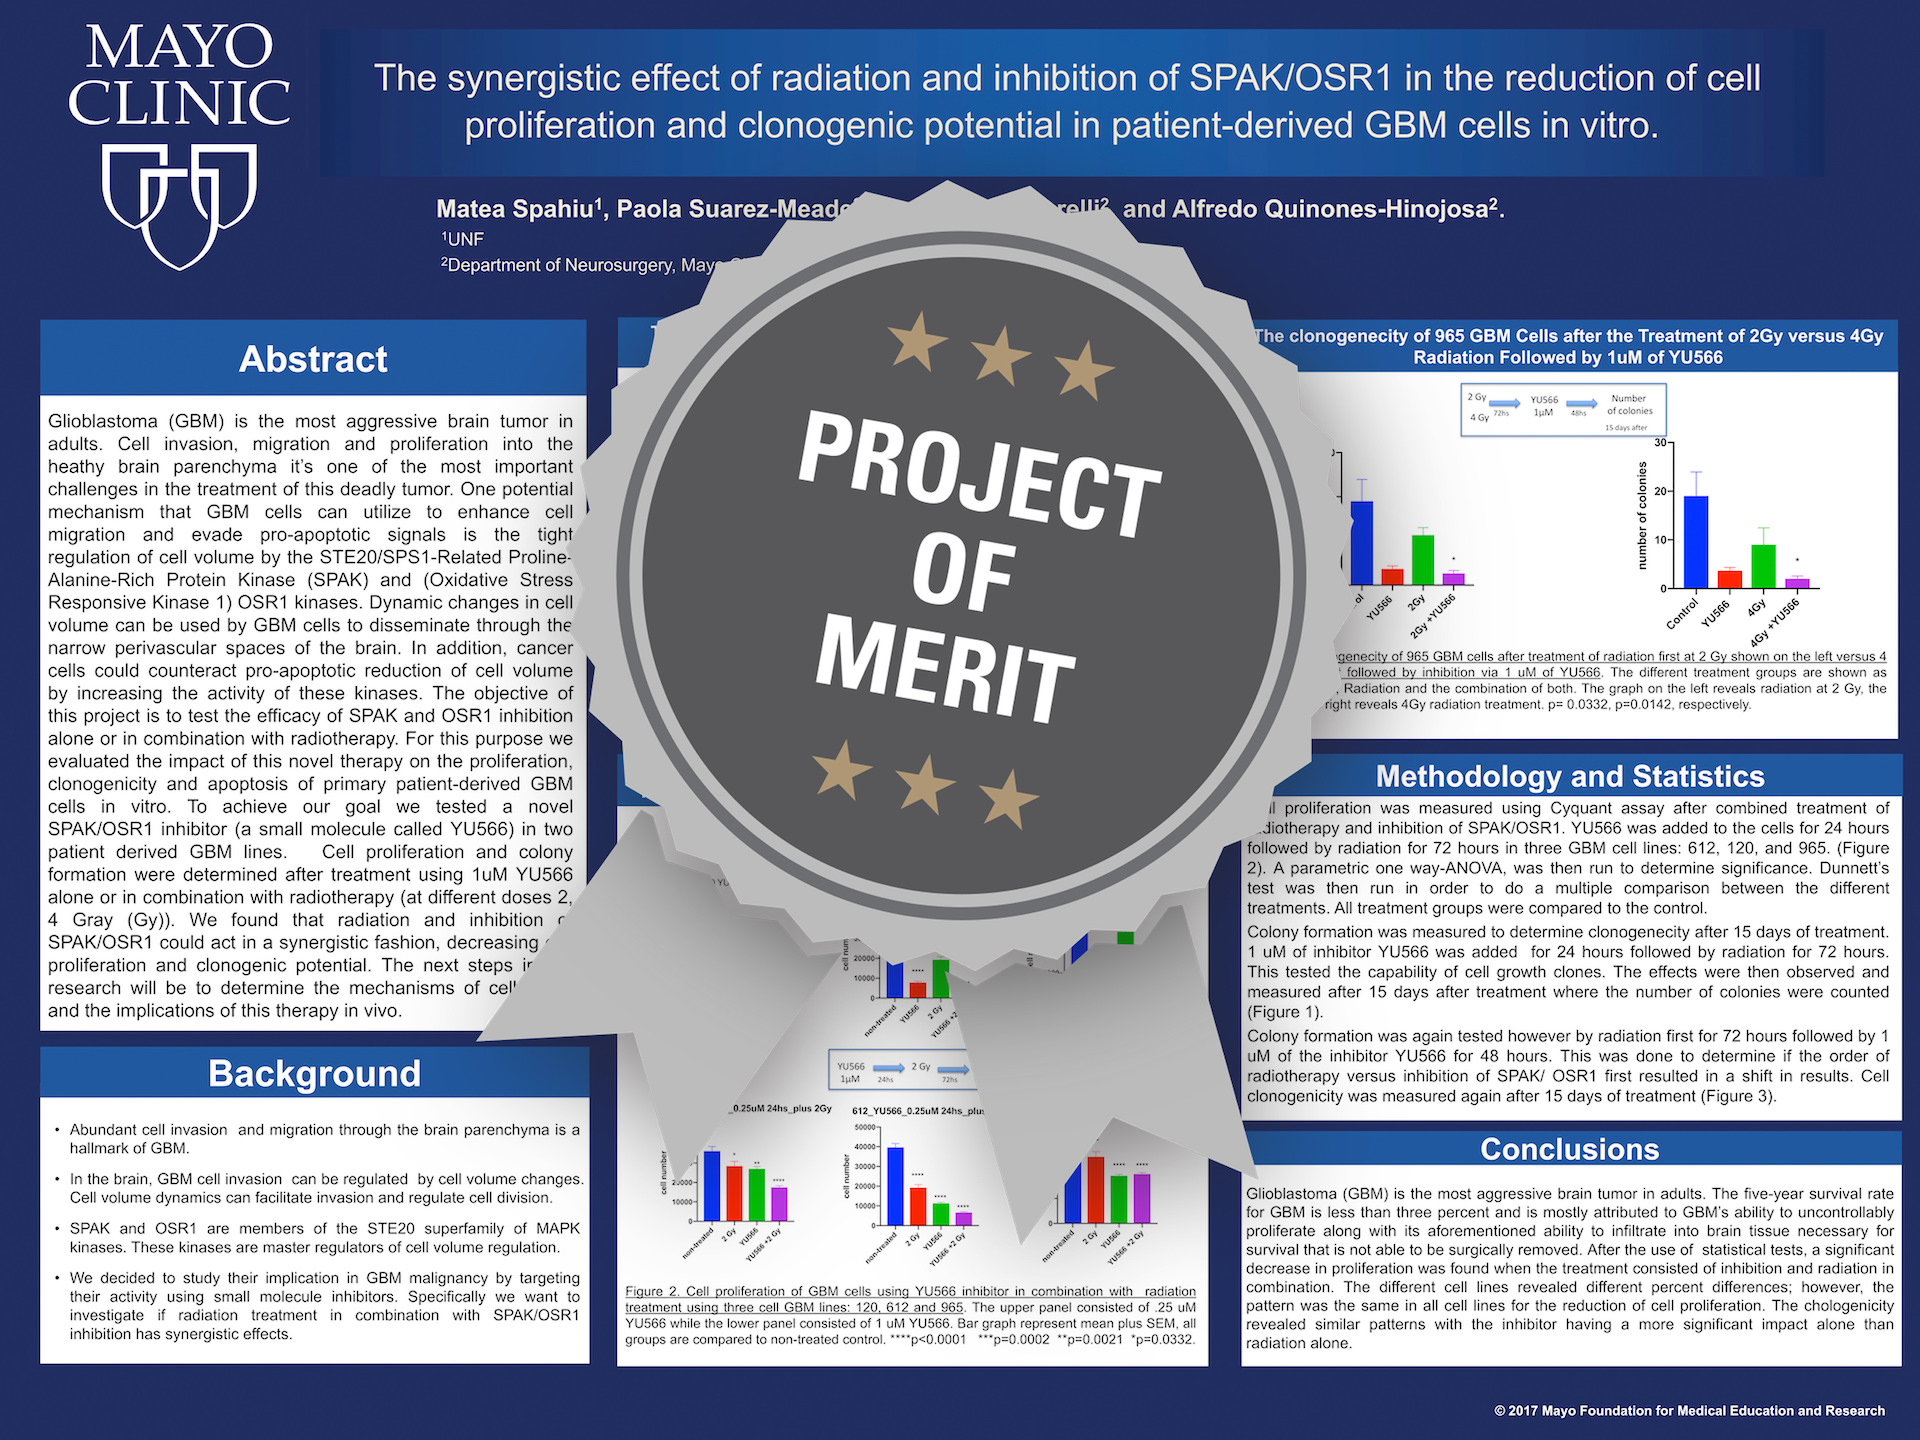 The synergistic effect of radiation and inhibition of SPAK/OSR1 in the reduction of cell proliferation and clonogenic potential in patient-derived GBM cells in vitro Project of Merit poster